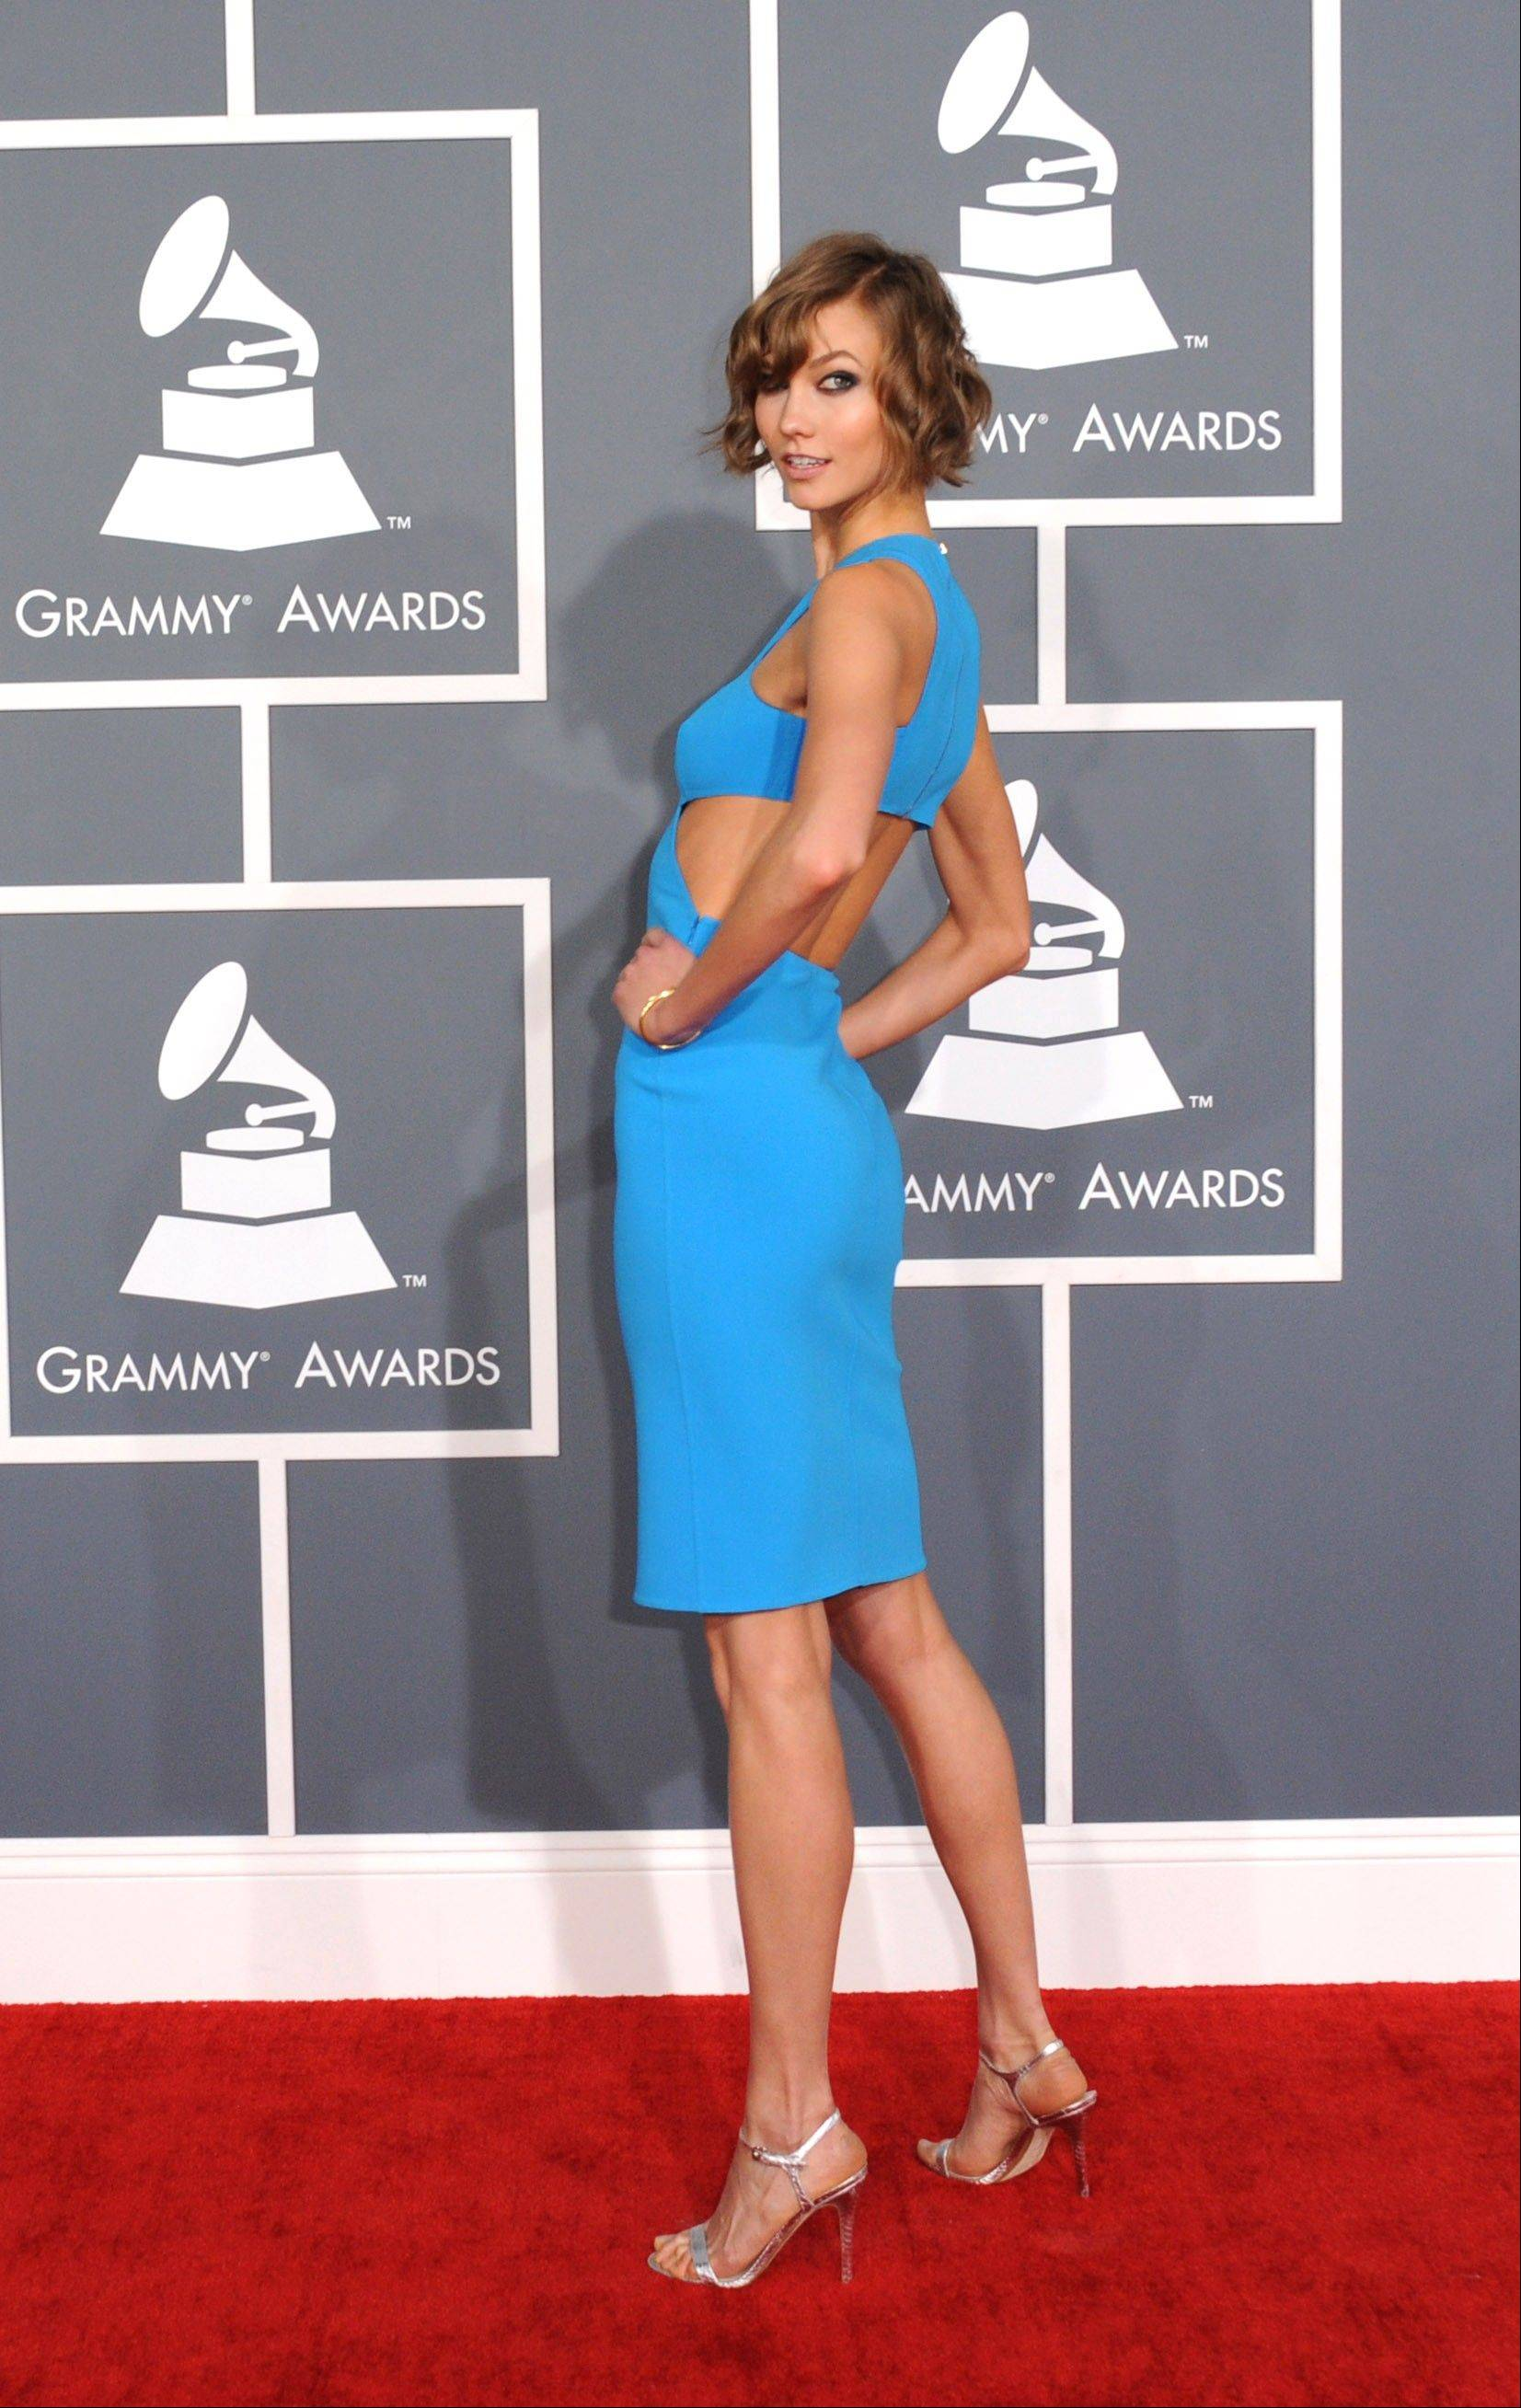 Karlie Kloss arrives at the 55th annual Grammy Awards on Sunday, Feb. 10, 2013, in Los Angeles.